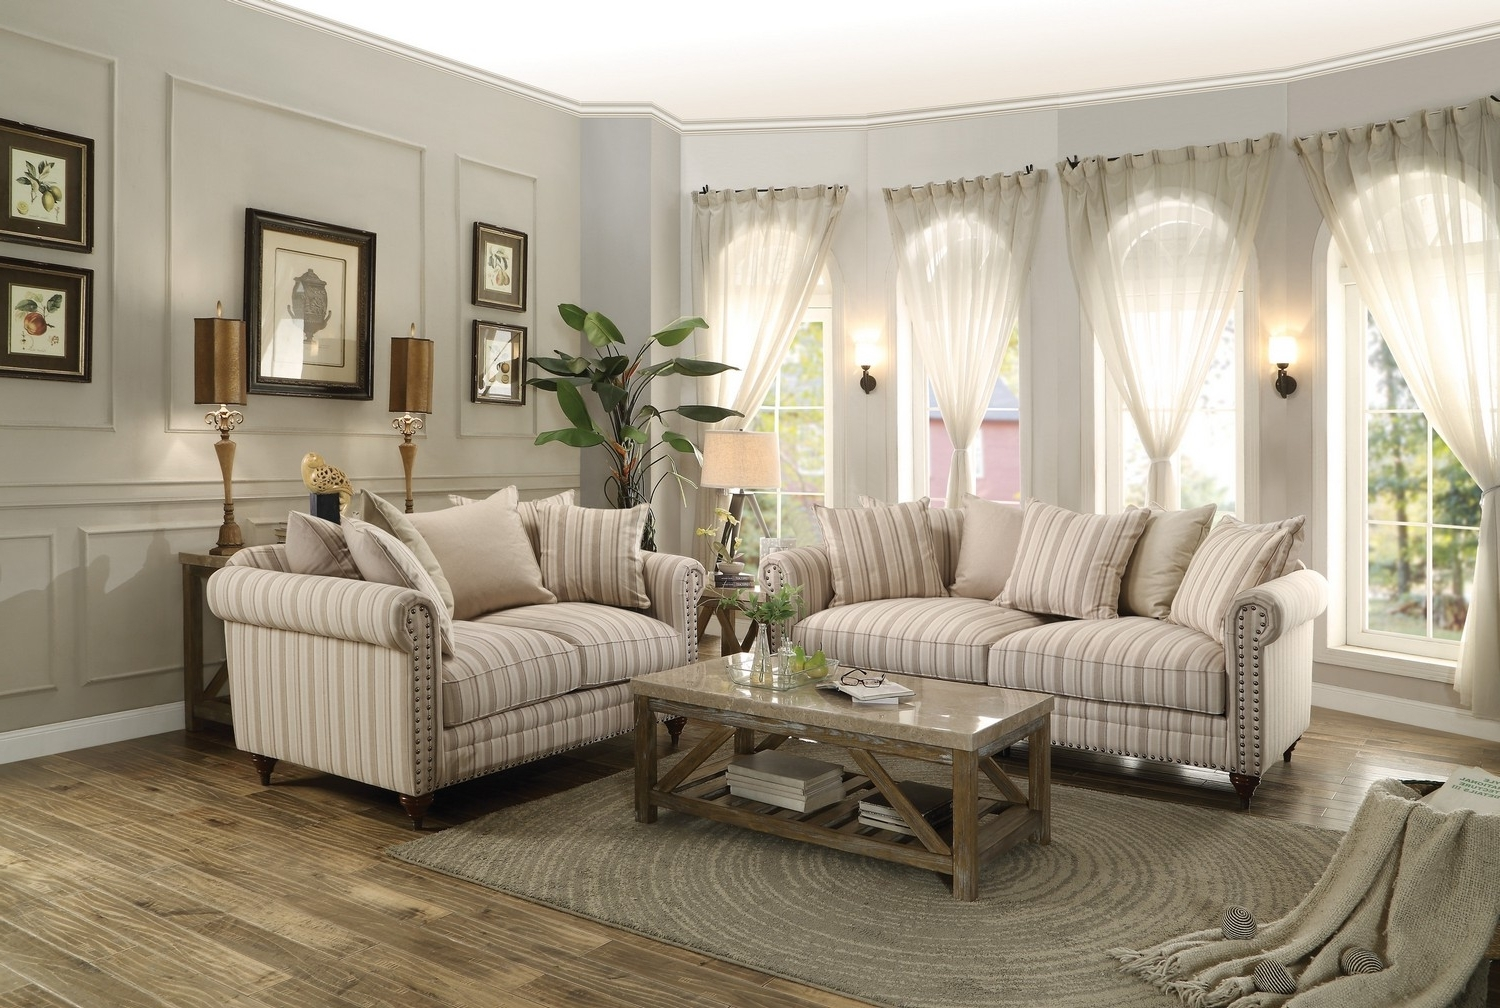 Striped Sofas And Chairs In Most Recent Homelegance Hadleyville Sofa Set – Polyester – Neutral Tone (View 13 of 15)